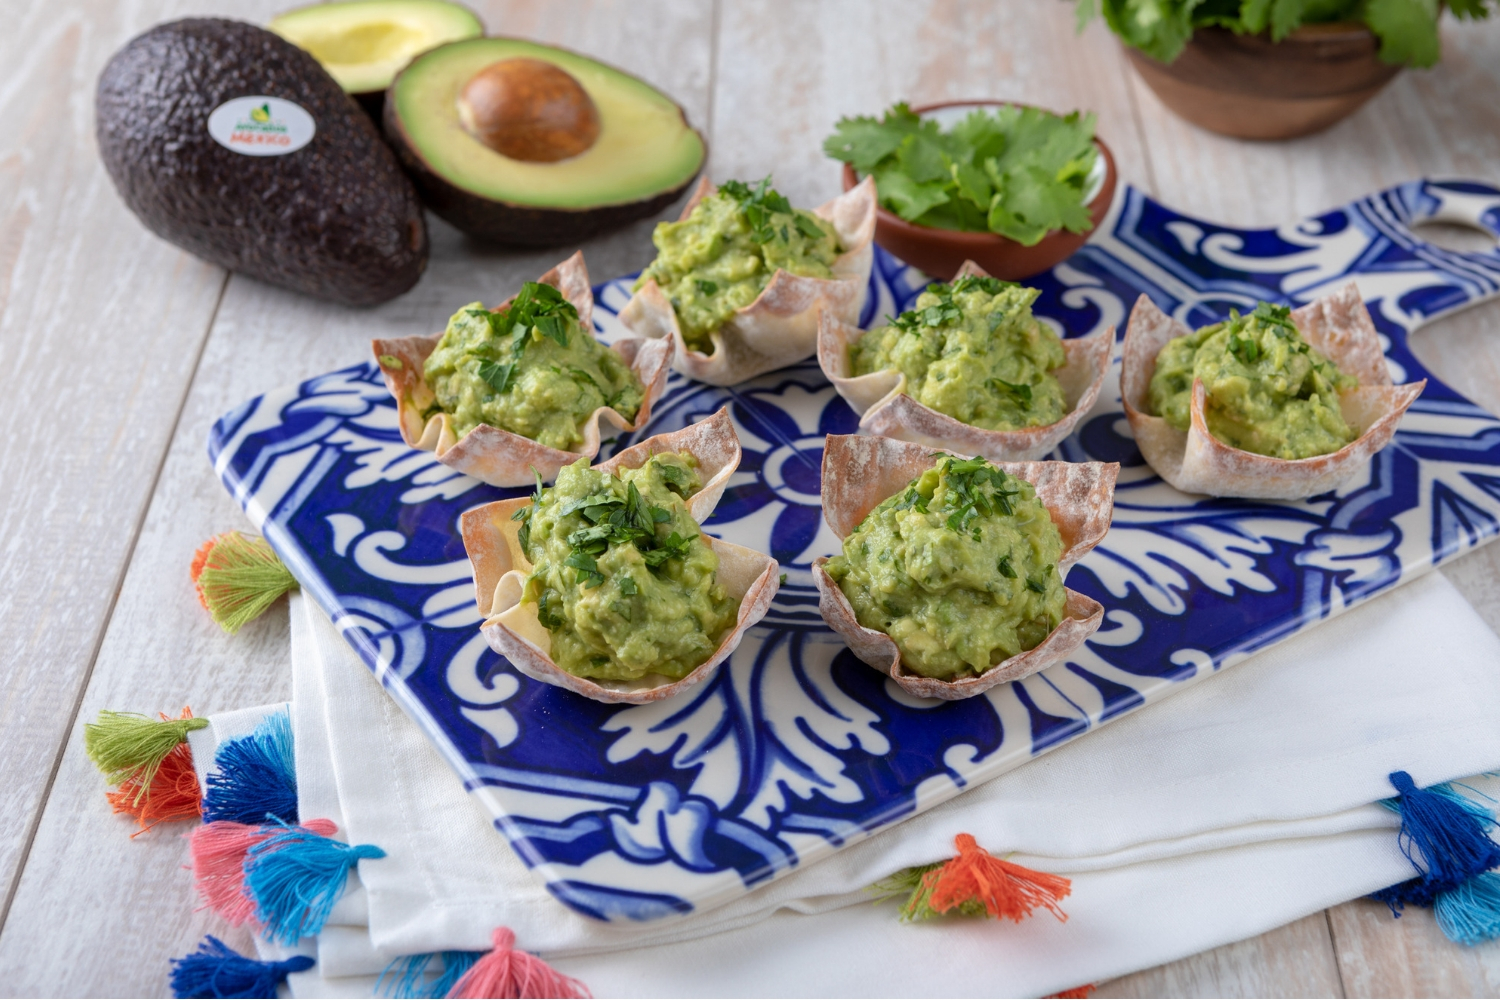 Guacamole Cups for 2, photo by Avocados From Mexico